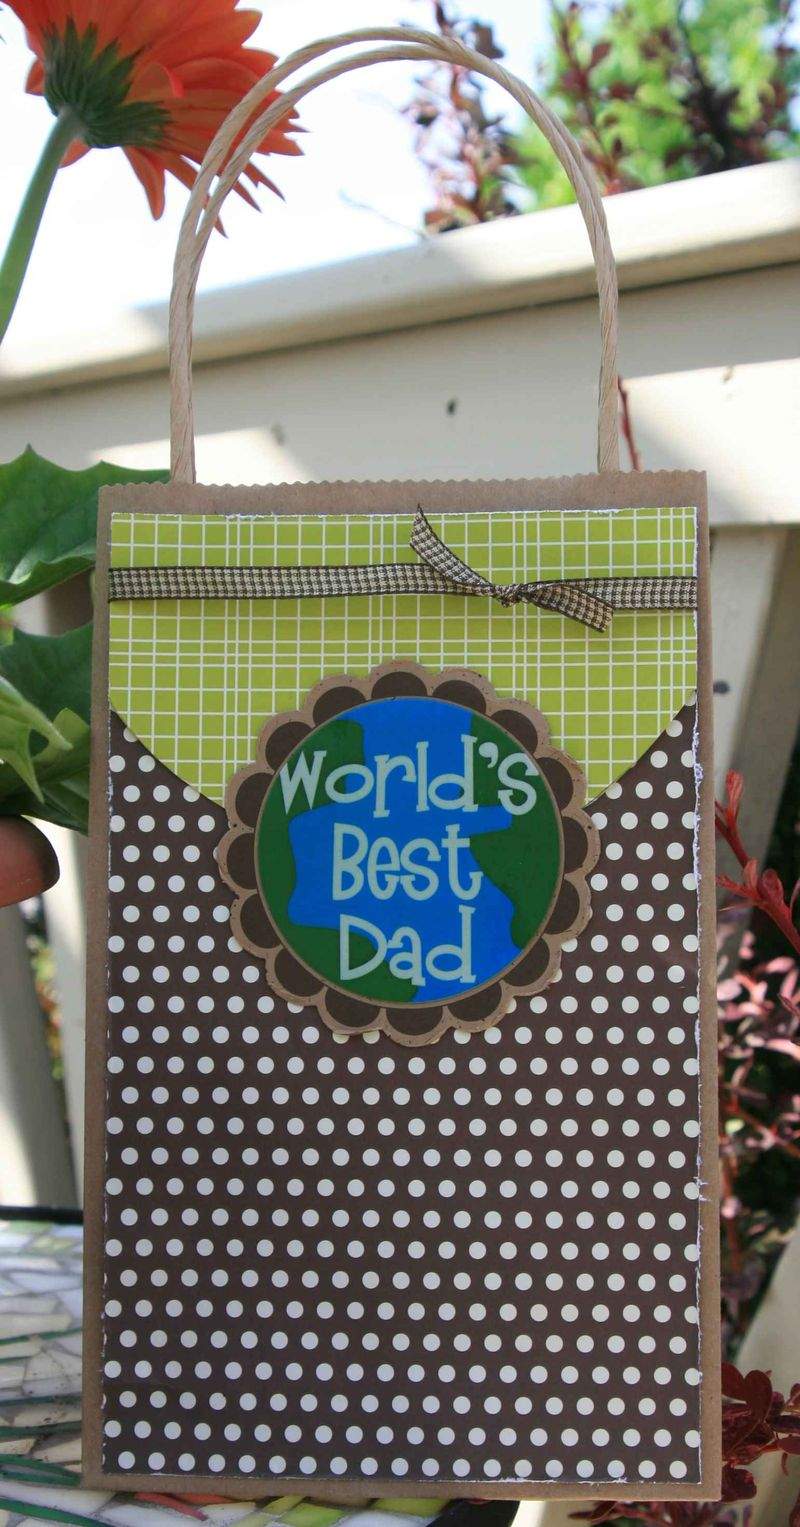 WorldsBestDad_bag_edit_sm